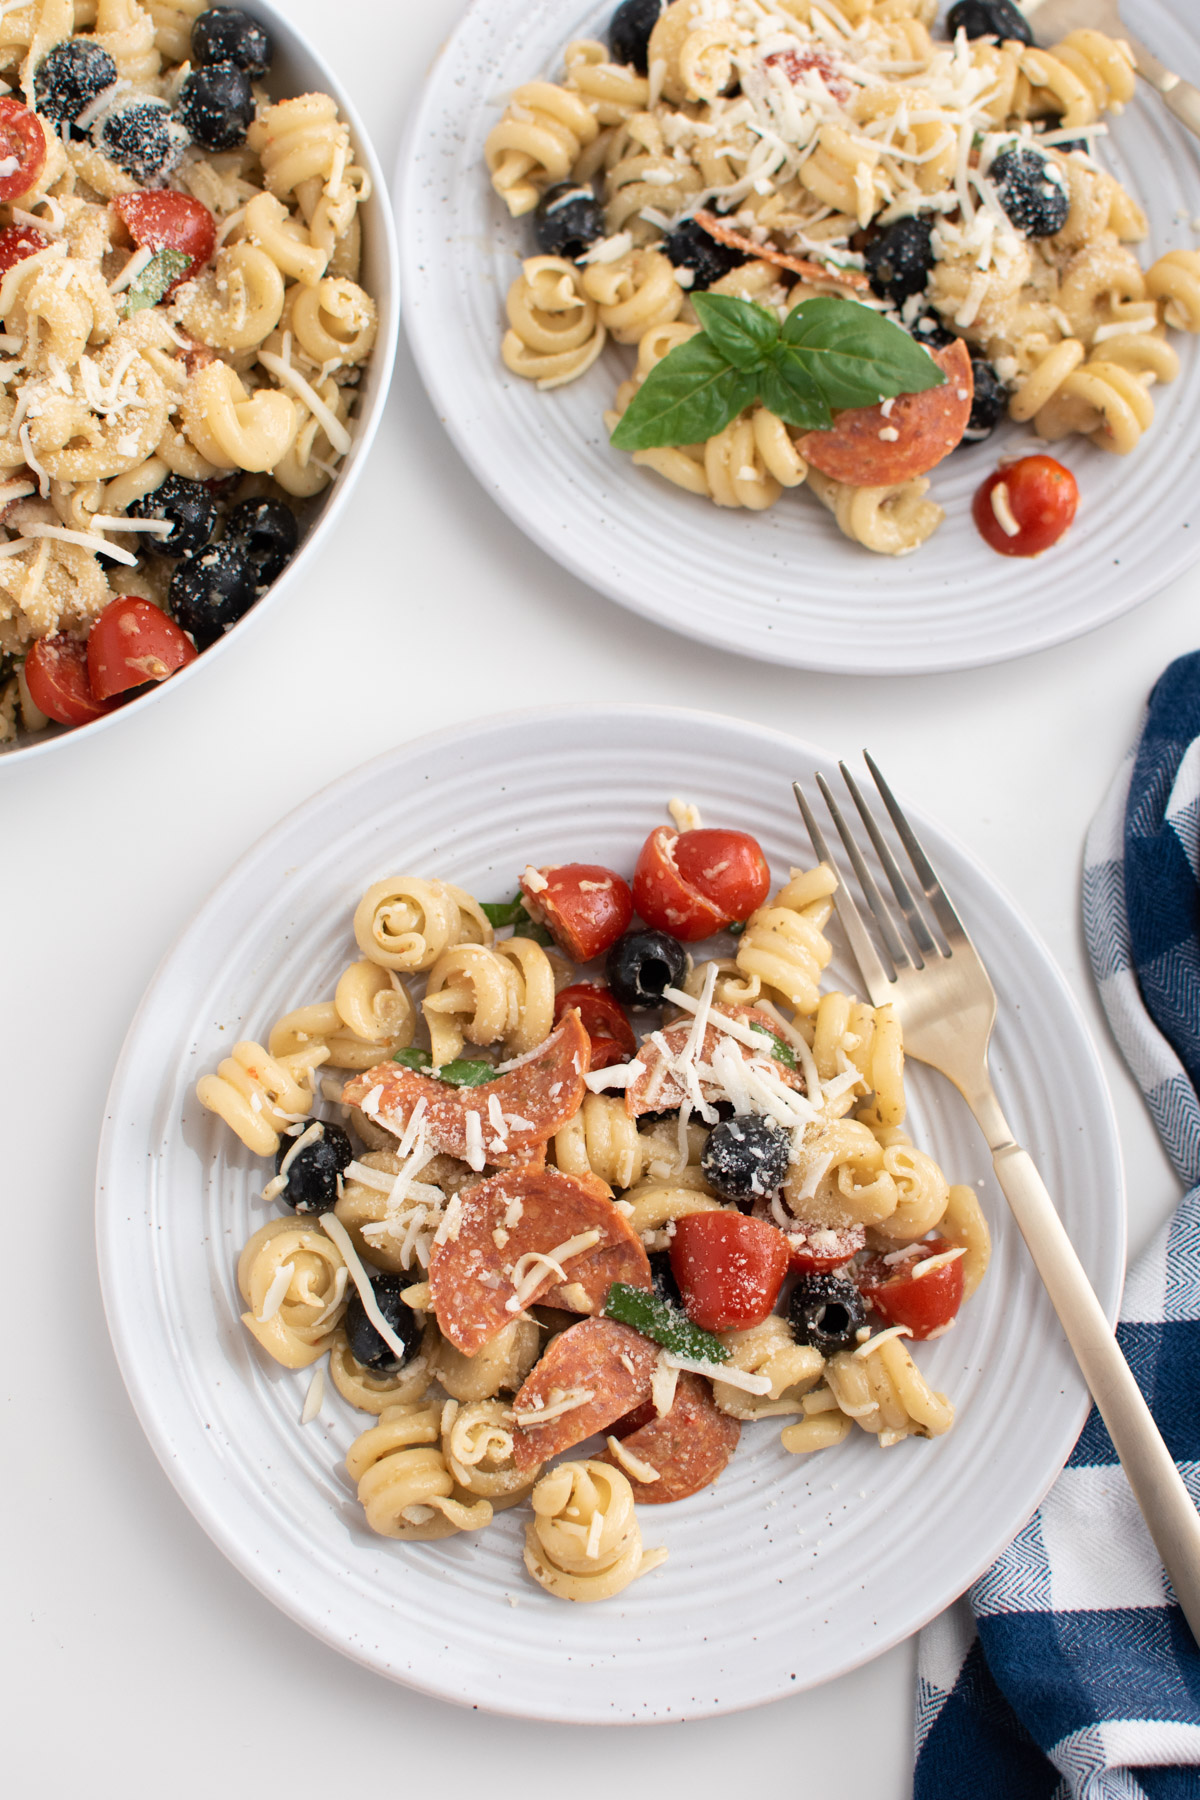 Pepperoni pizza pasta salad on white plates with fork and fresh basil leaves.